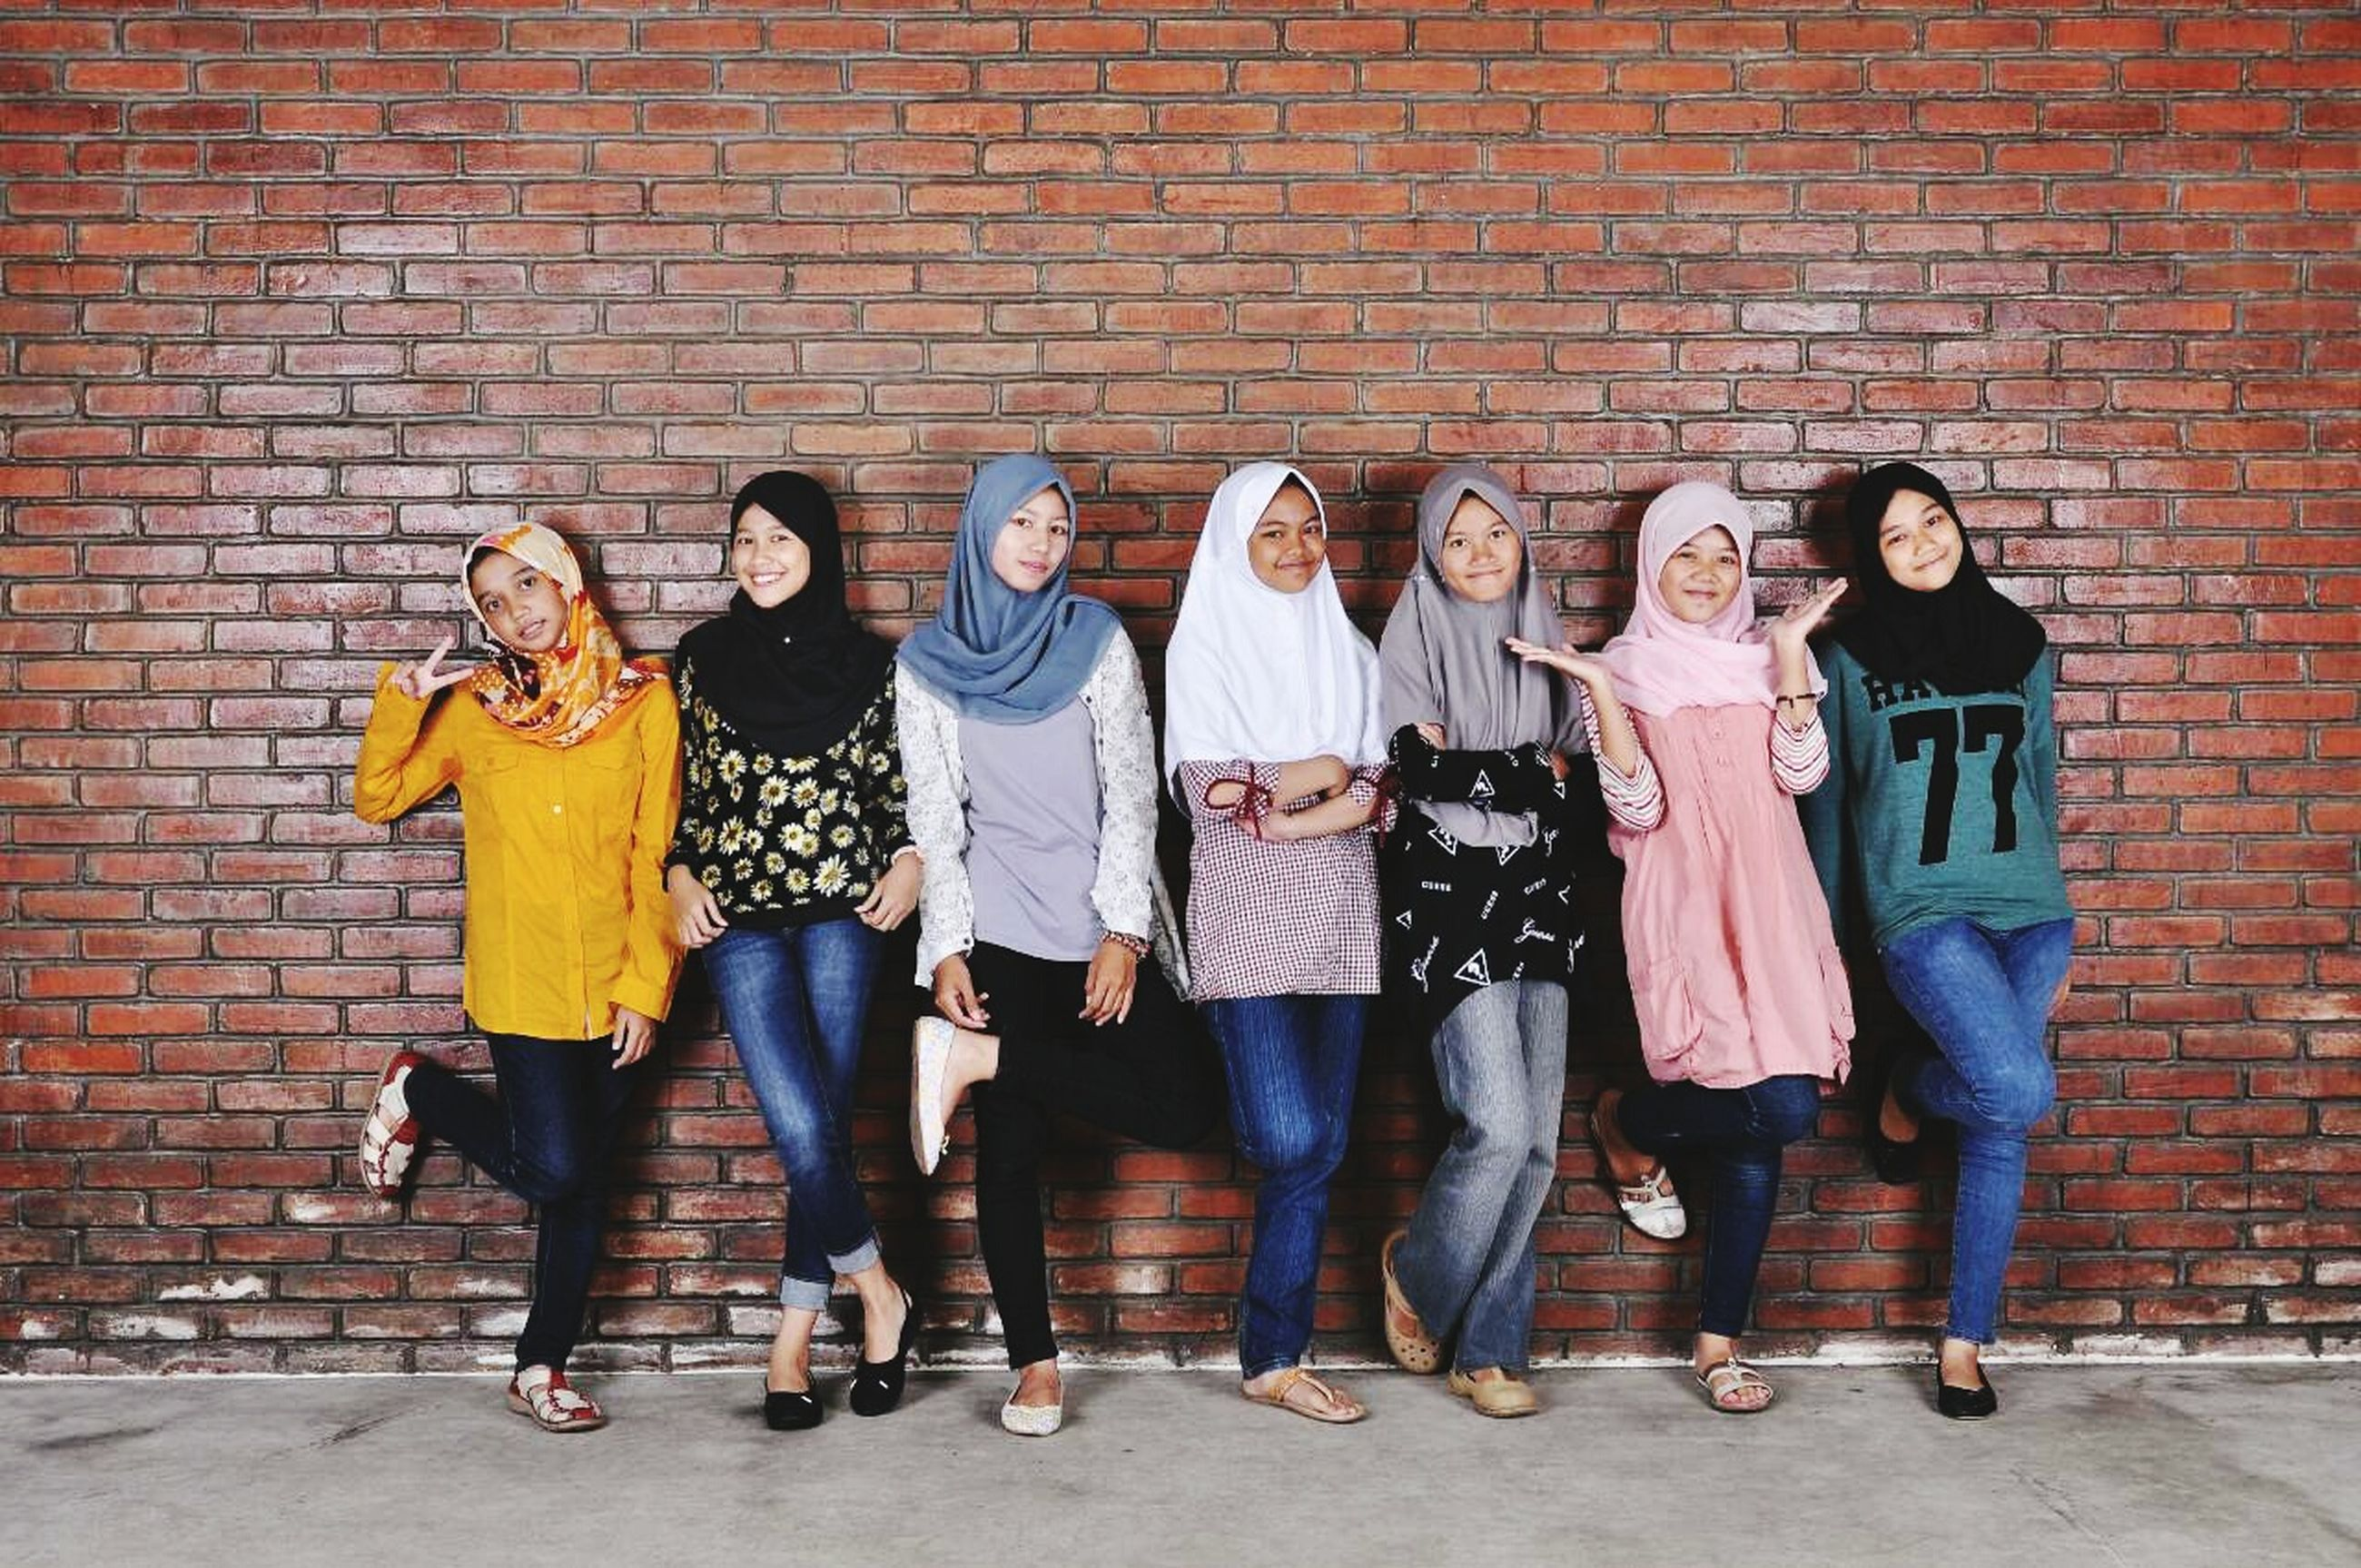 lifestyles, togetherness, casual clothing, full length, leisure activity, men, love, wall - building feature, bonding, built structure, standing, person, architecture, front view, friendship, building exterior, traditional clothing, brick wall